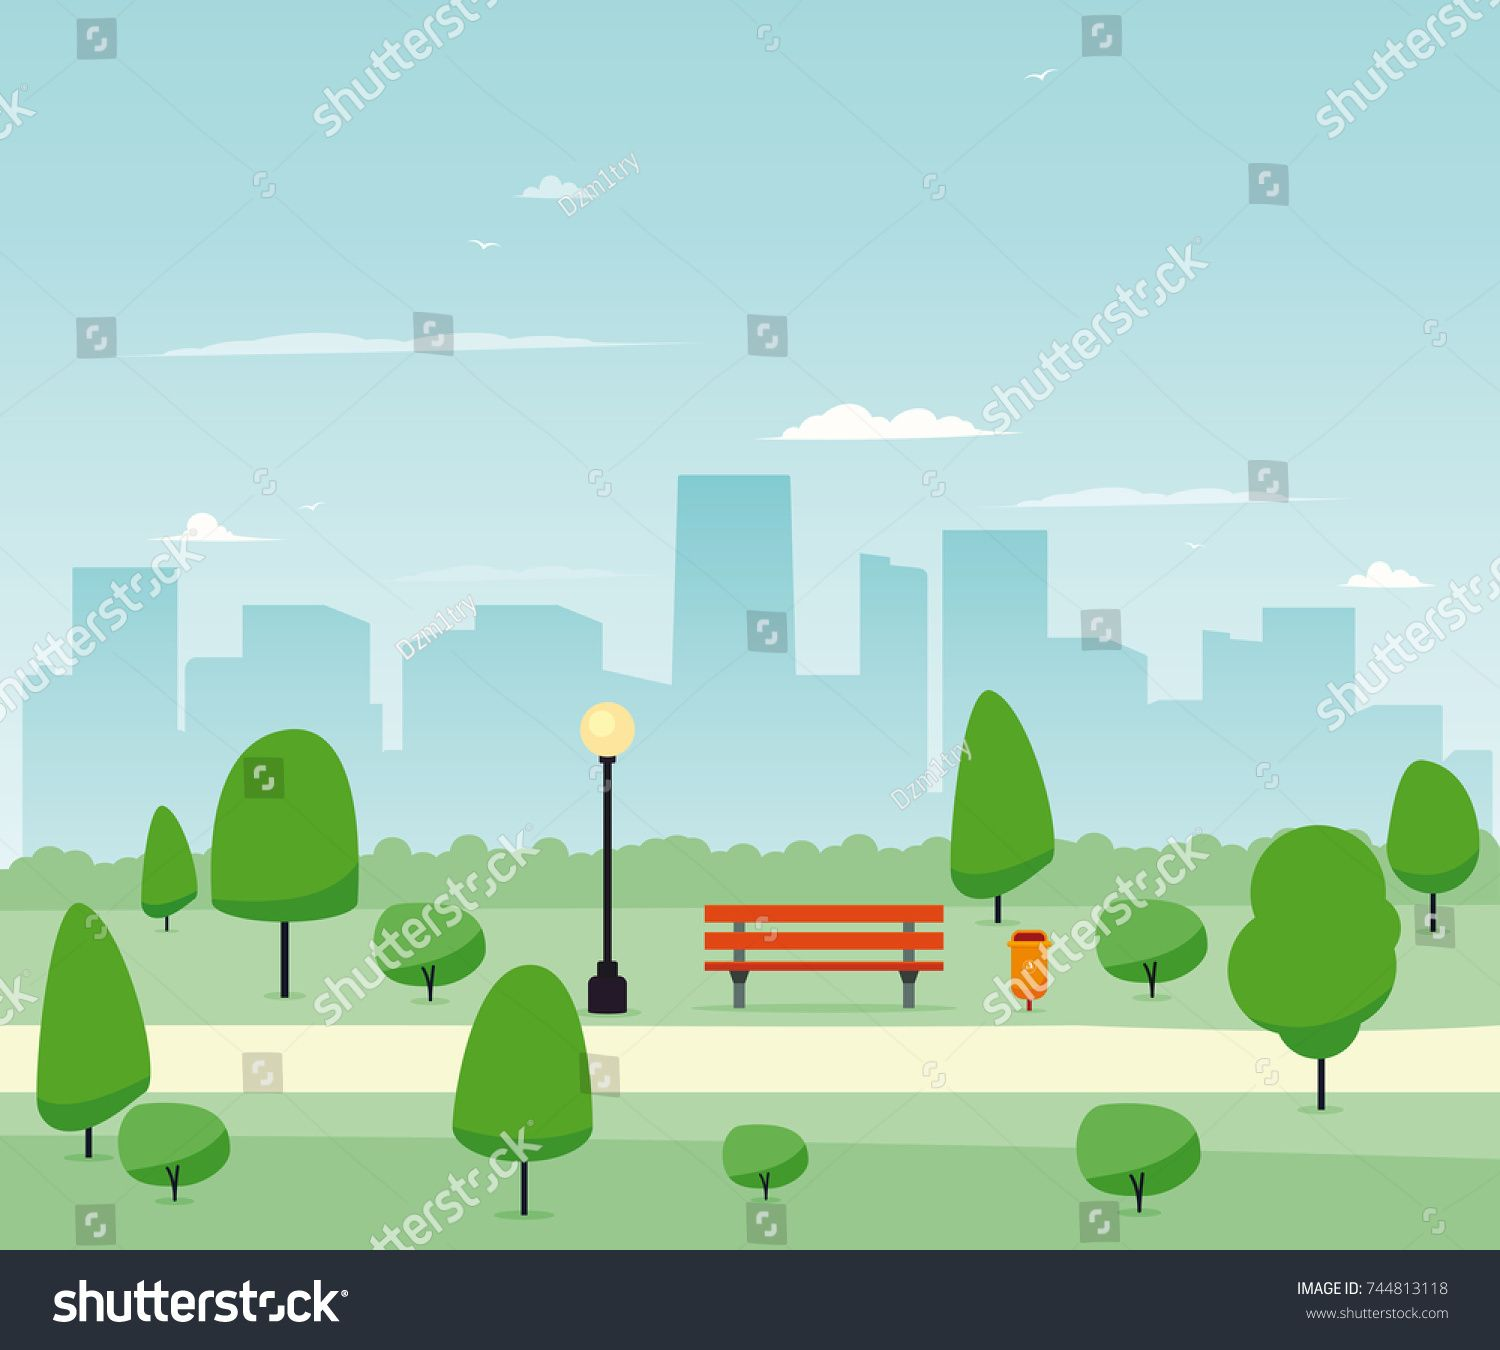 City Park With Wooden Bench Vector Illustration Sponsored Affiliate Wooden Park City Illustration City Illustration Clipart Images Park City